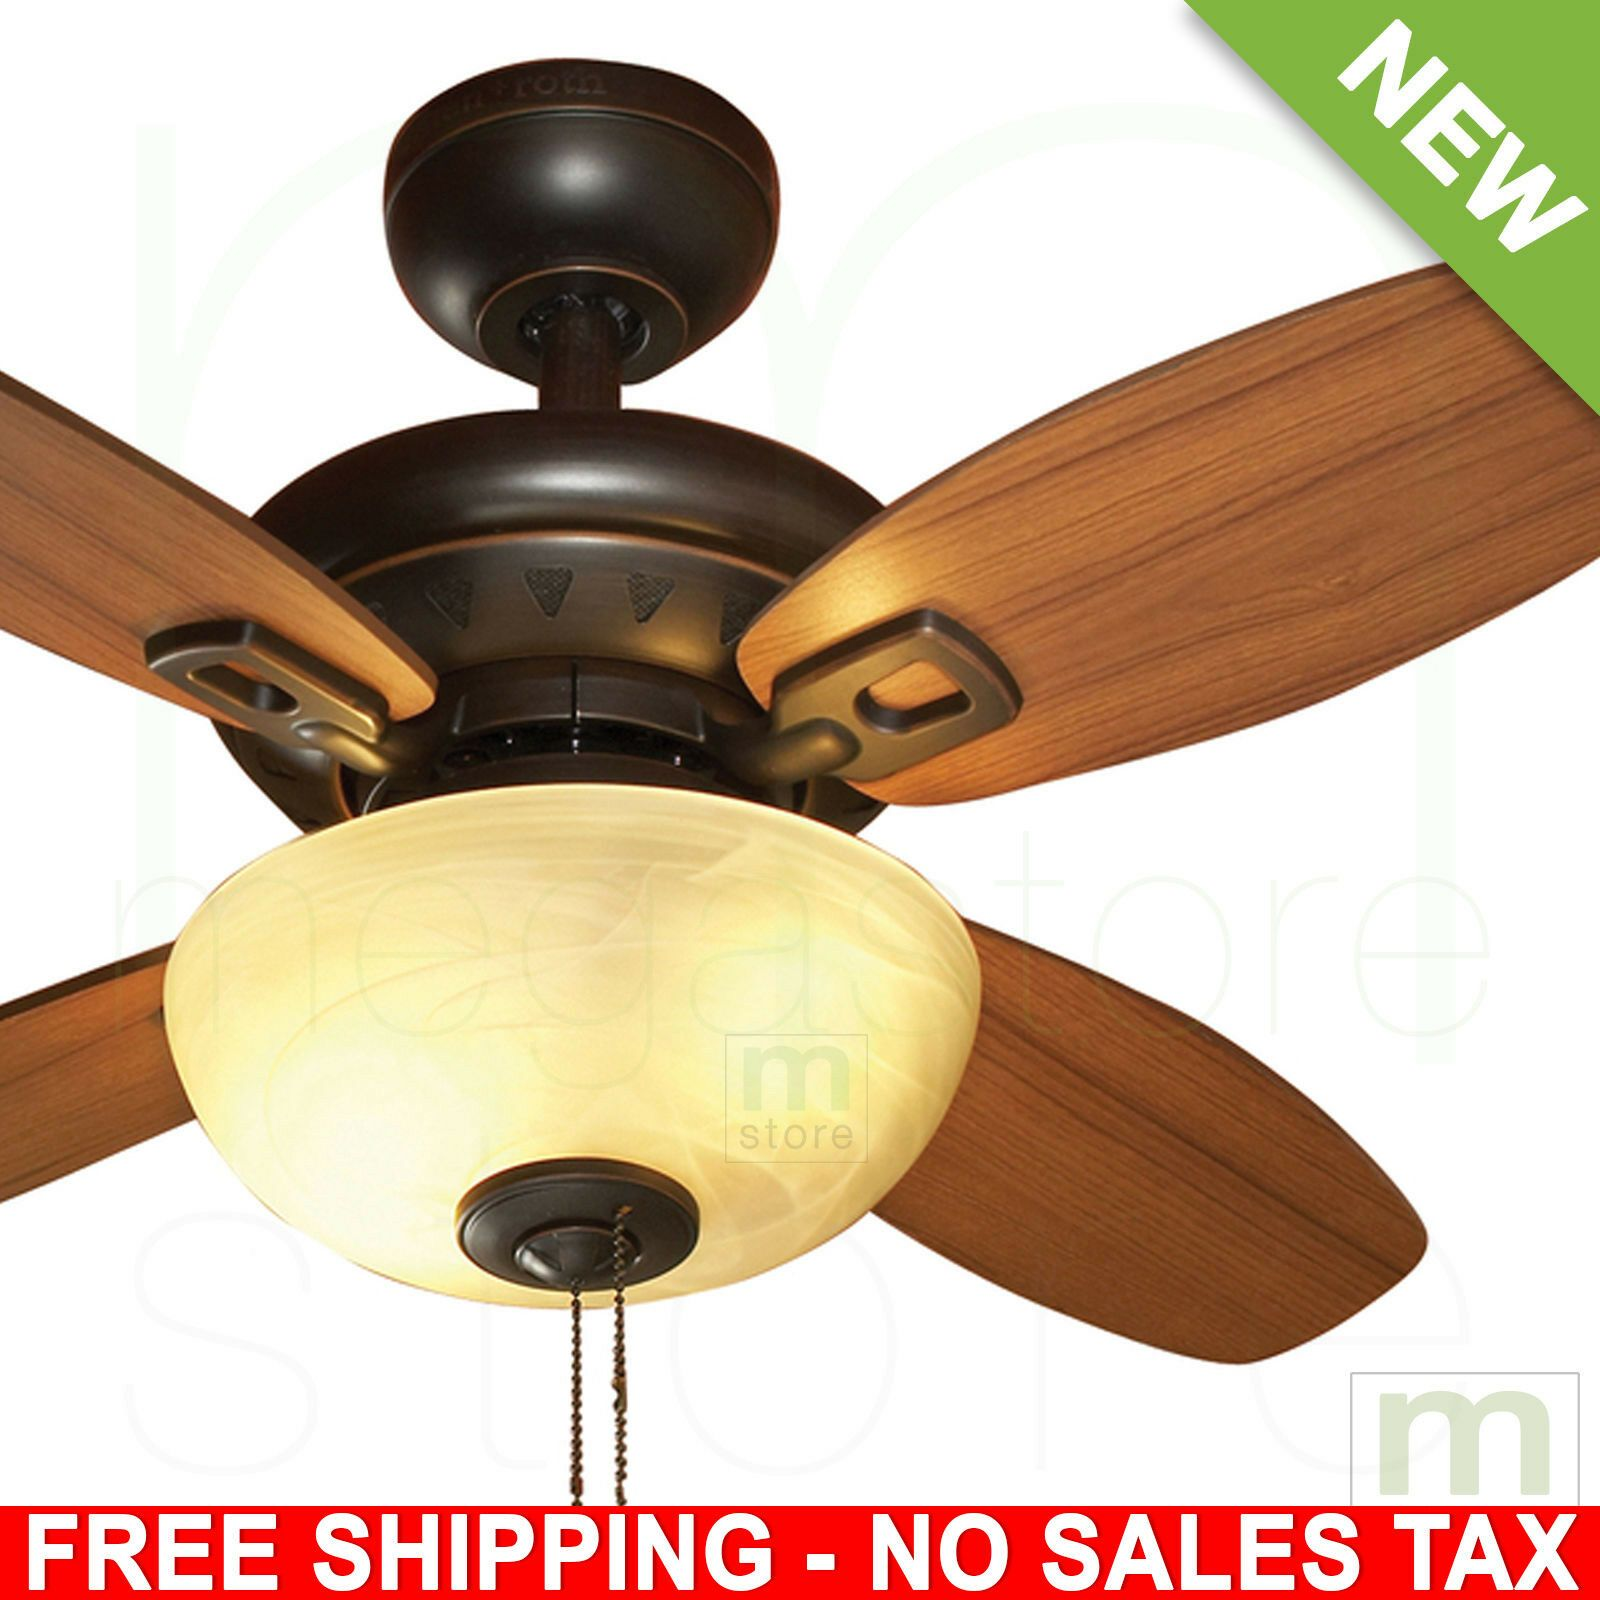 Details About 32 Ceiling Fan Light Kit Reversible Blades Dark